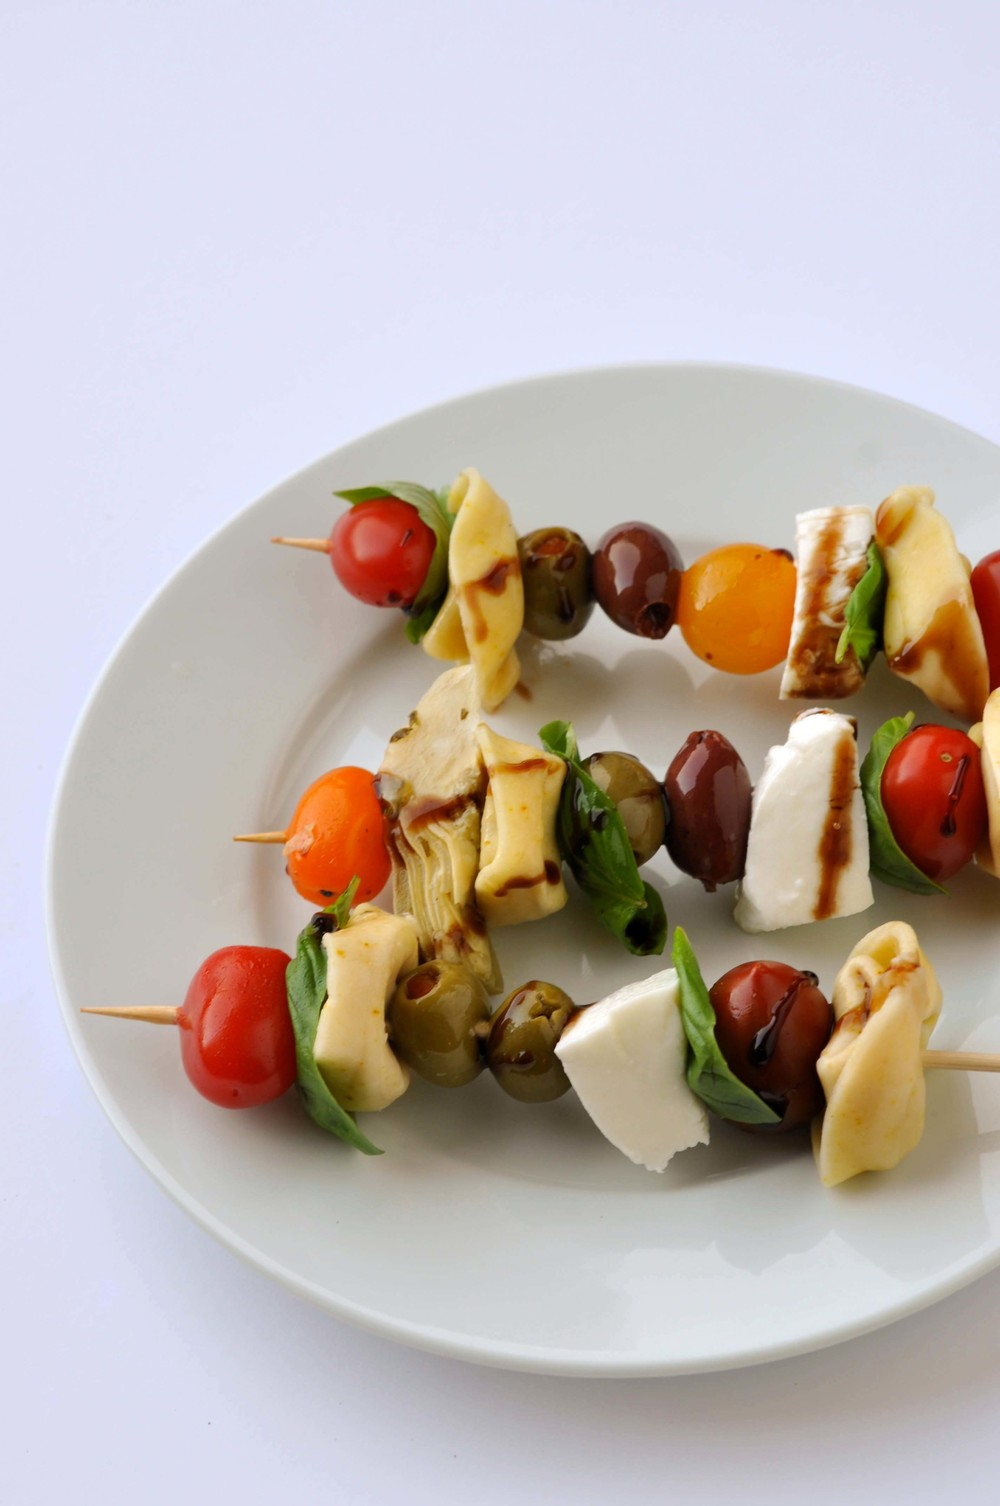 Antipasto Skewers - a quick, easy, & vegetarian dinner made from cheese tortellini, olives, cherries, mozzarella, and artichokes.